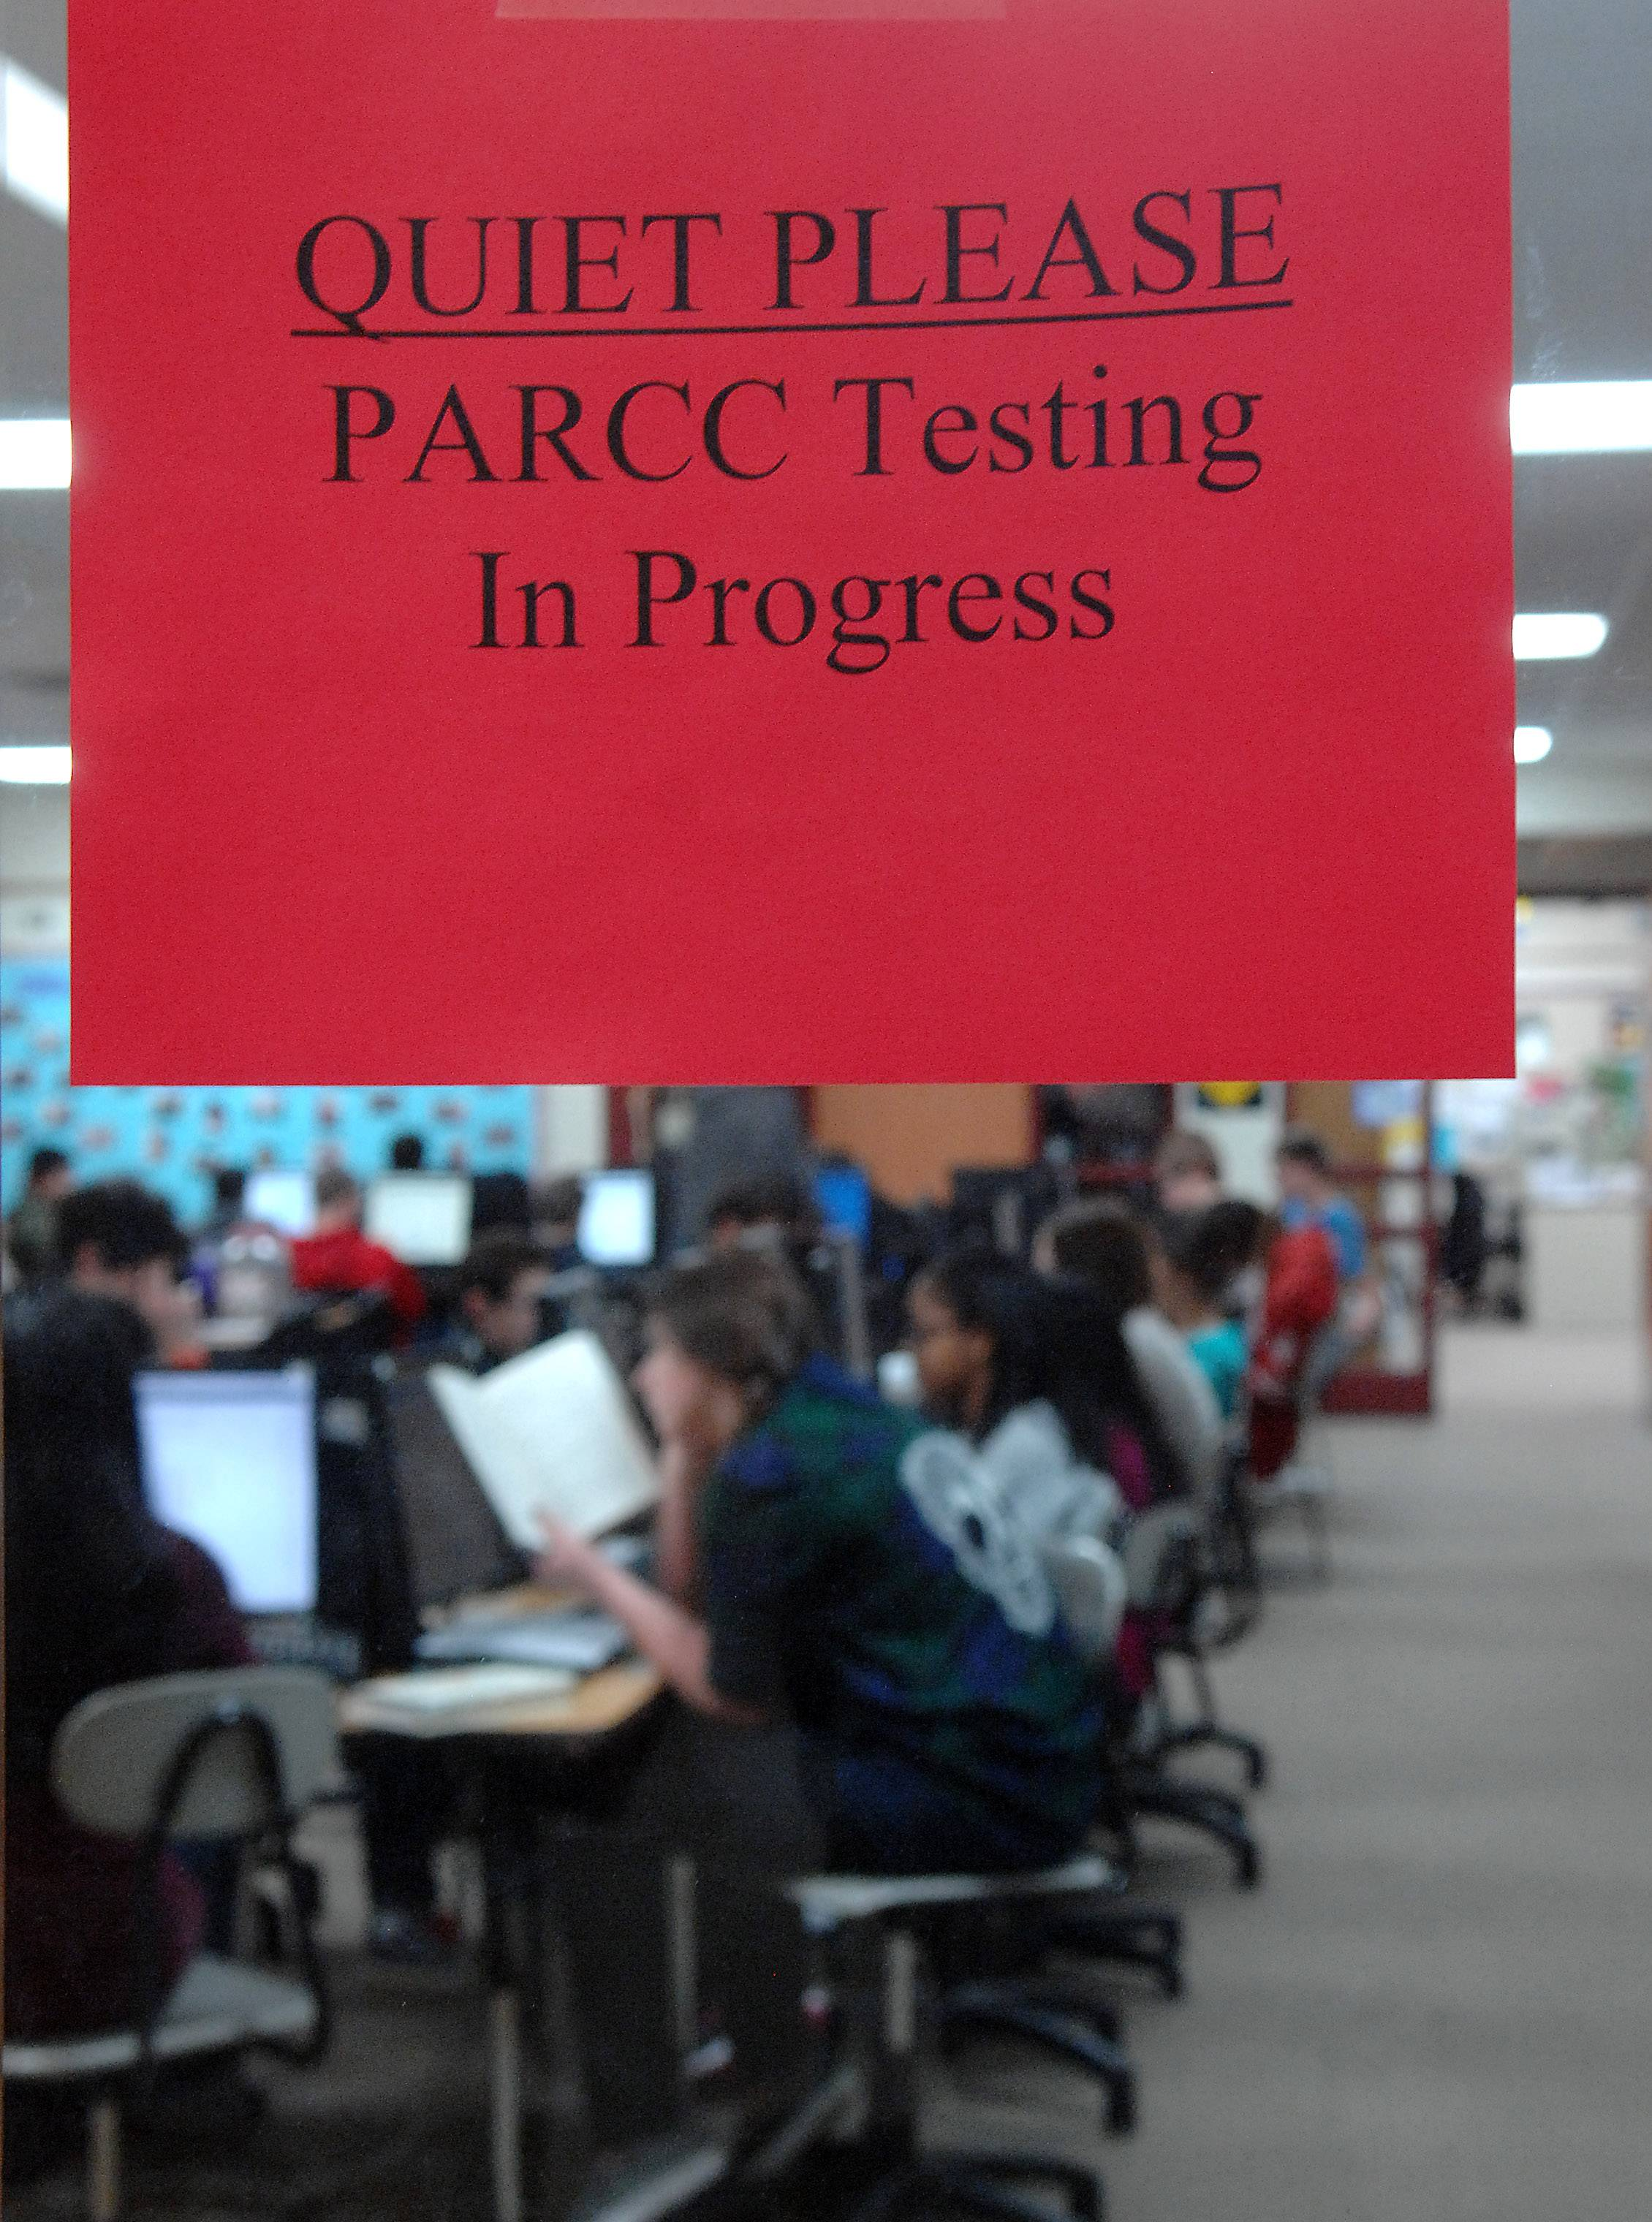 Illinois to change controversial PARCC test after this year